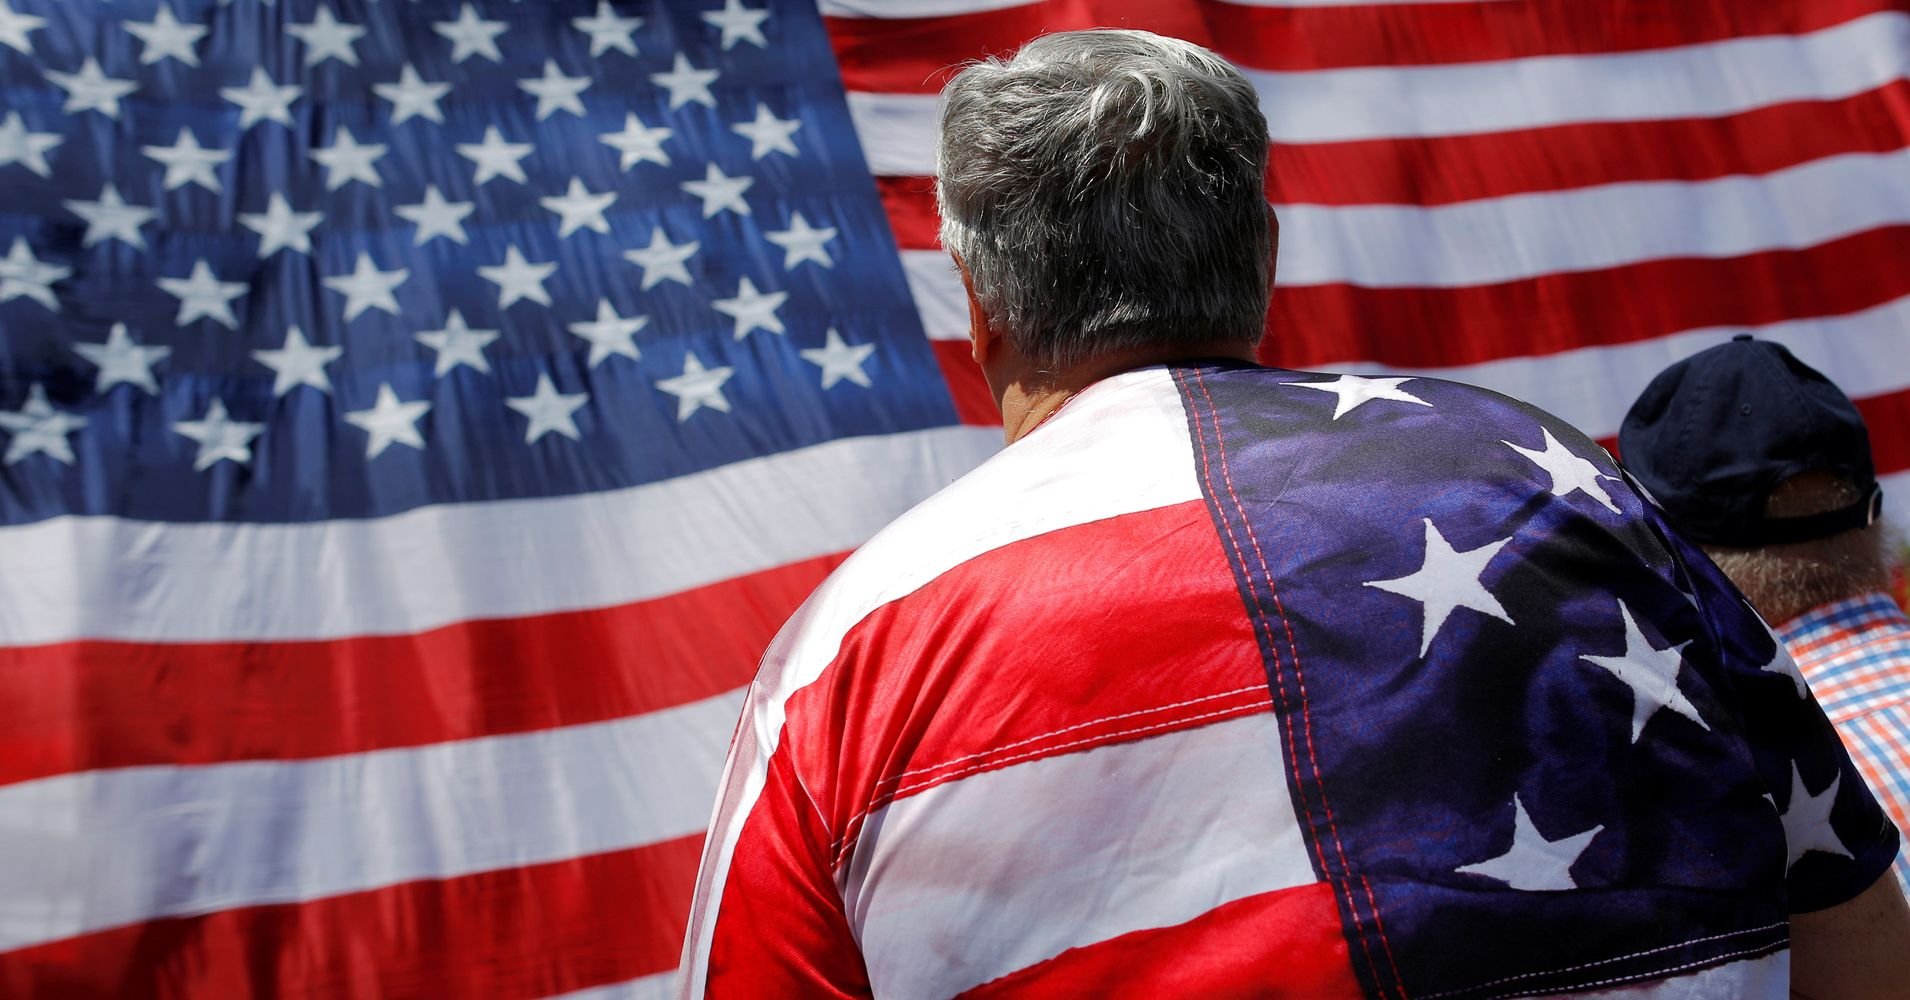 here are some ways people disrespect the flag daily based on flag